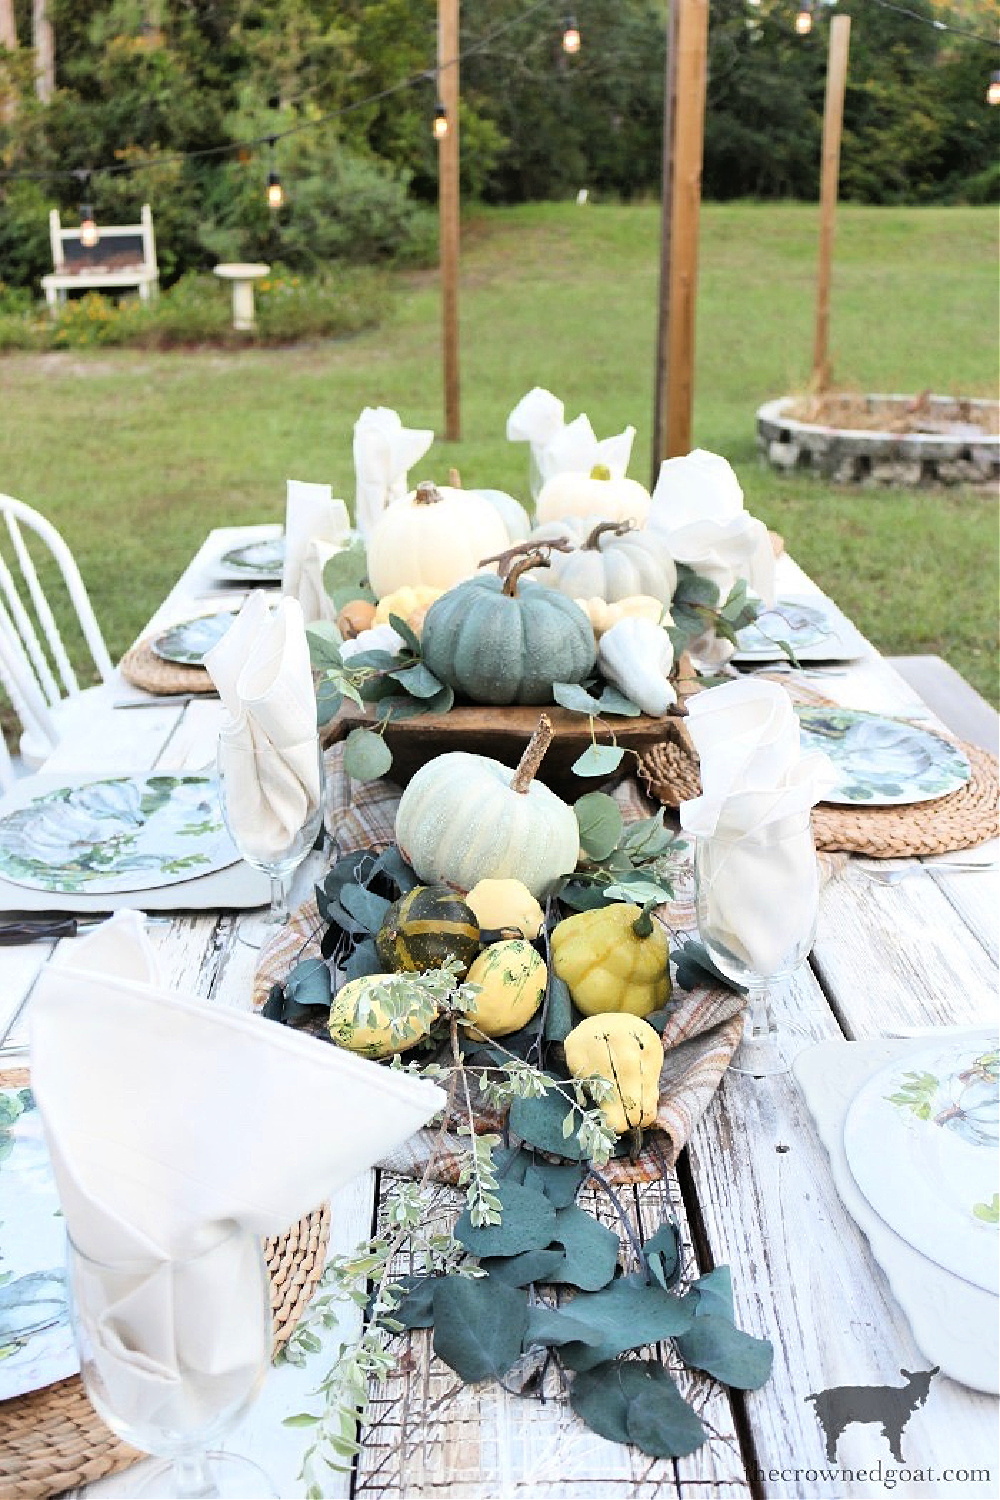 Simple Ways to Prepare Now for the Holidays-Festive Tablescapes-The Crowned Goat